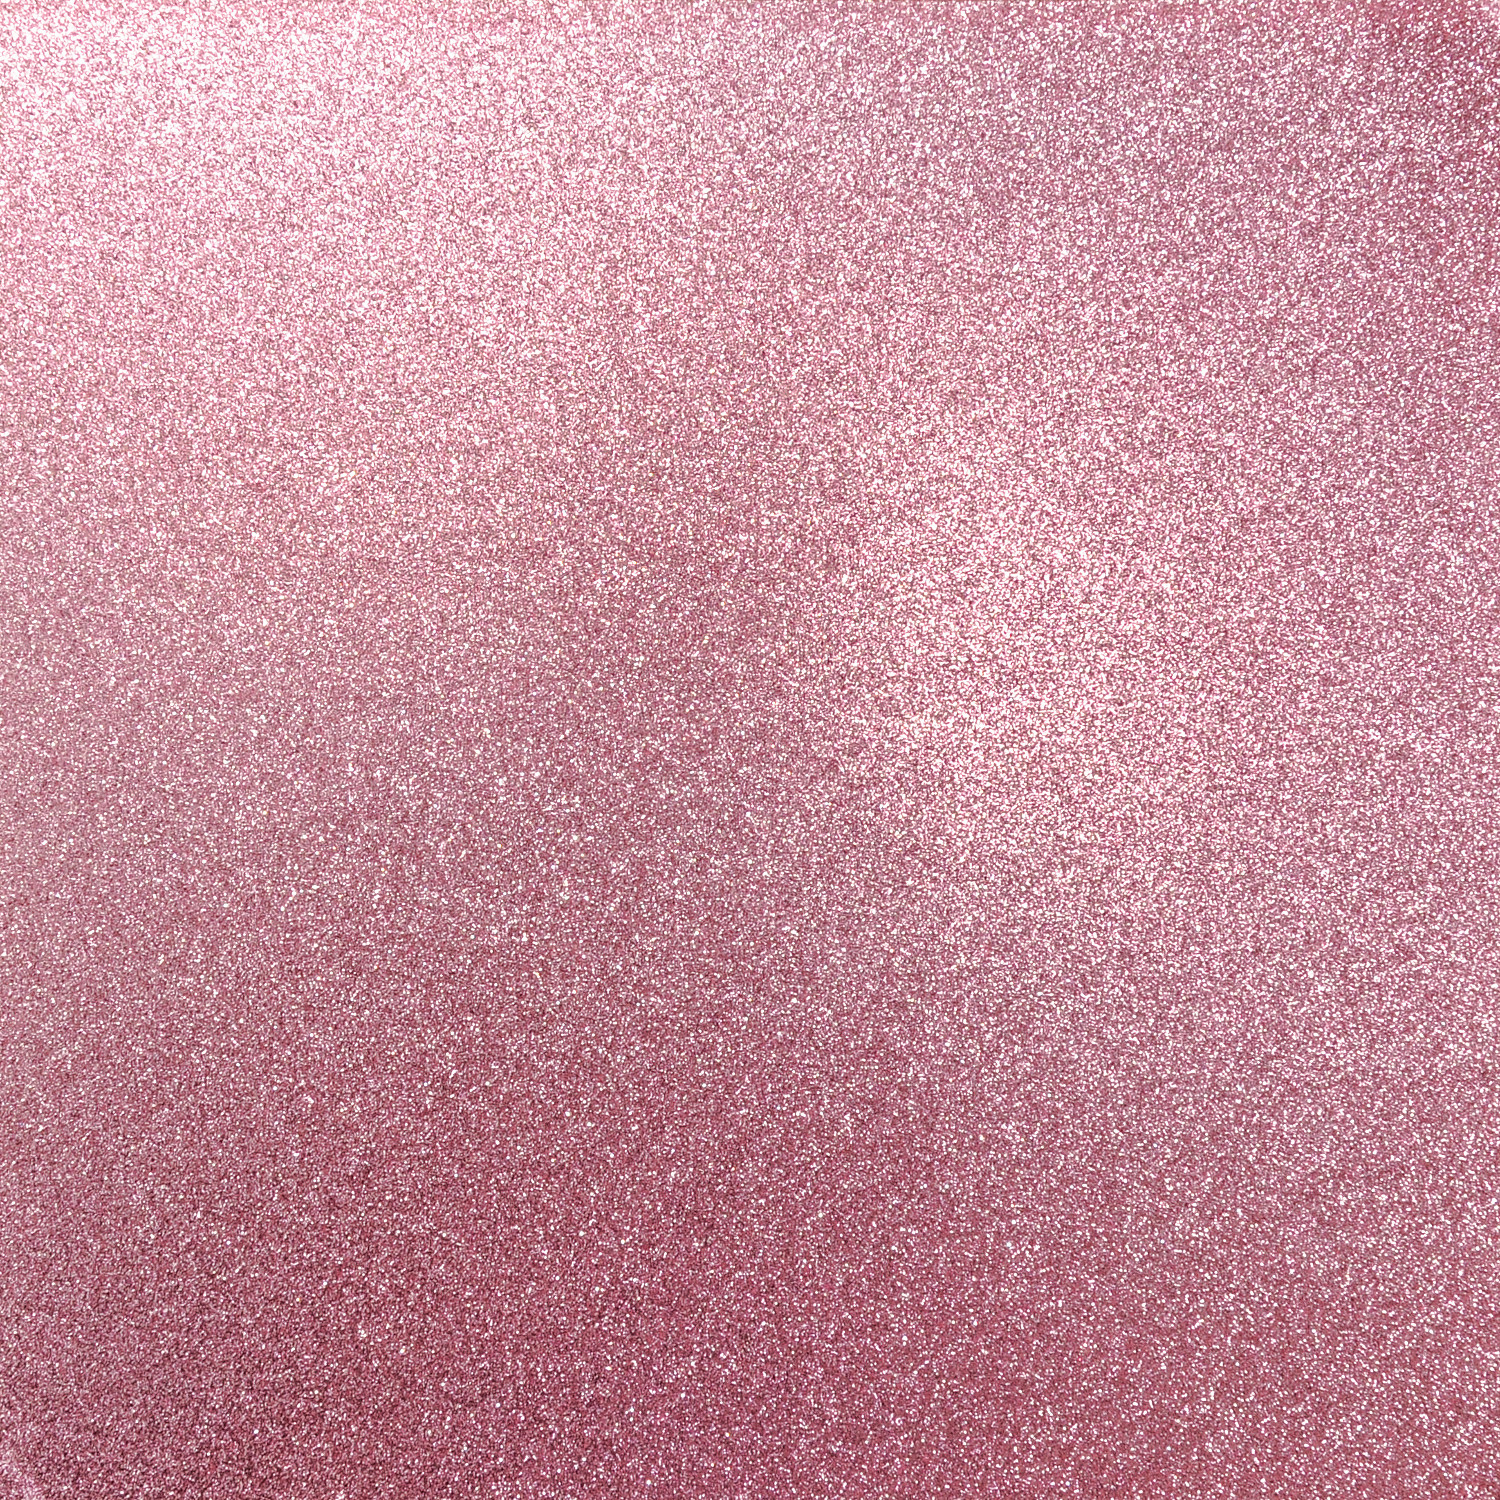 How to scrapbook with glitter paper - Kaisercraft Glitter Cardstock New Core Product